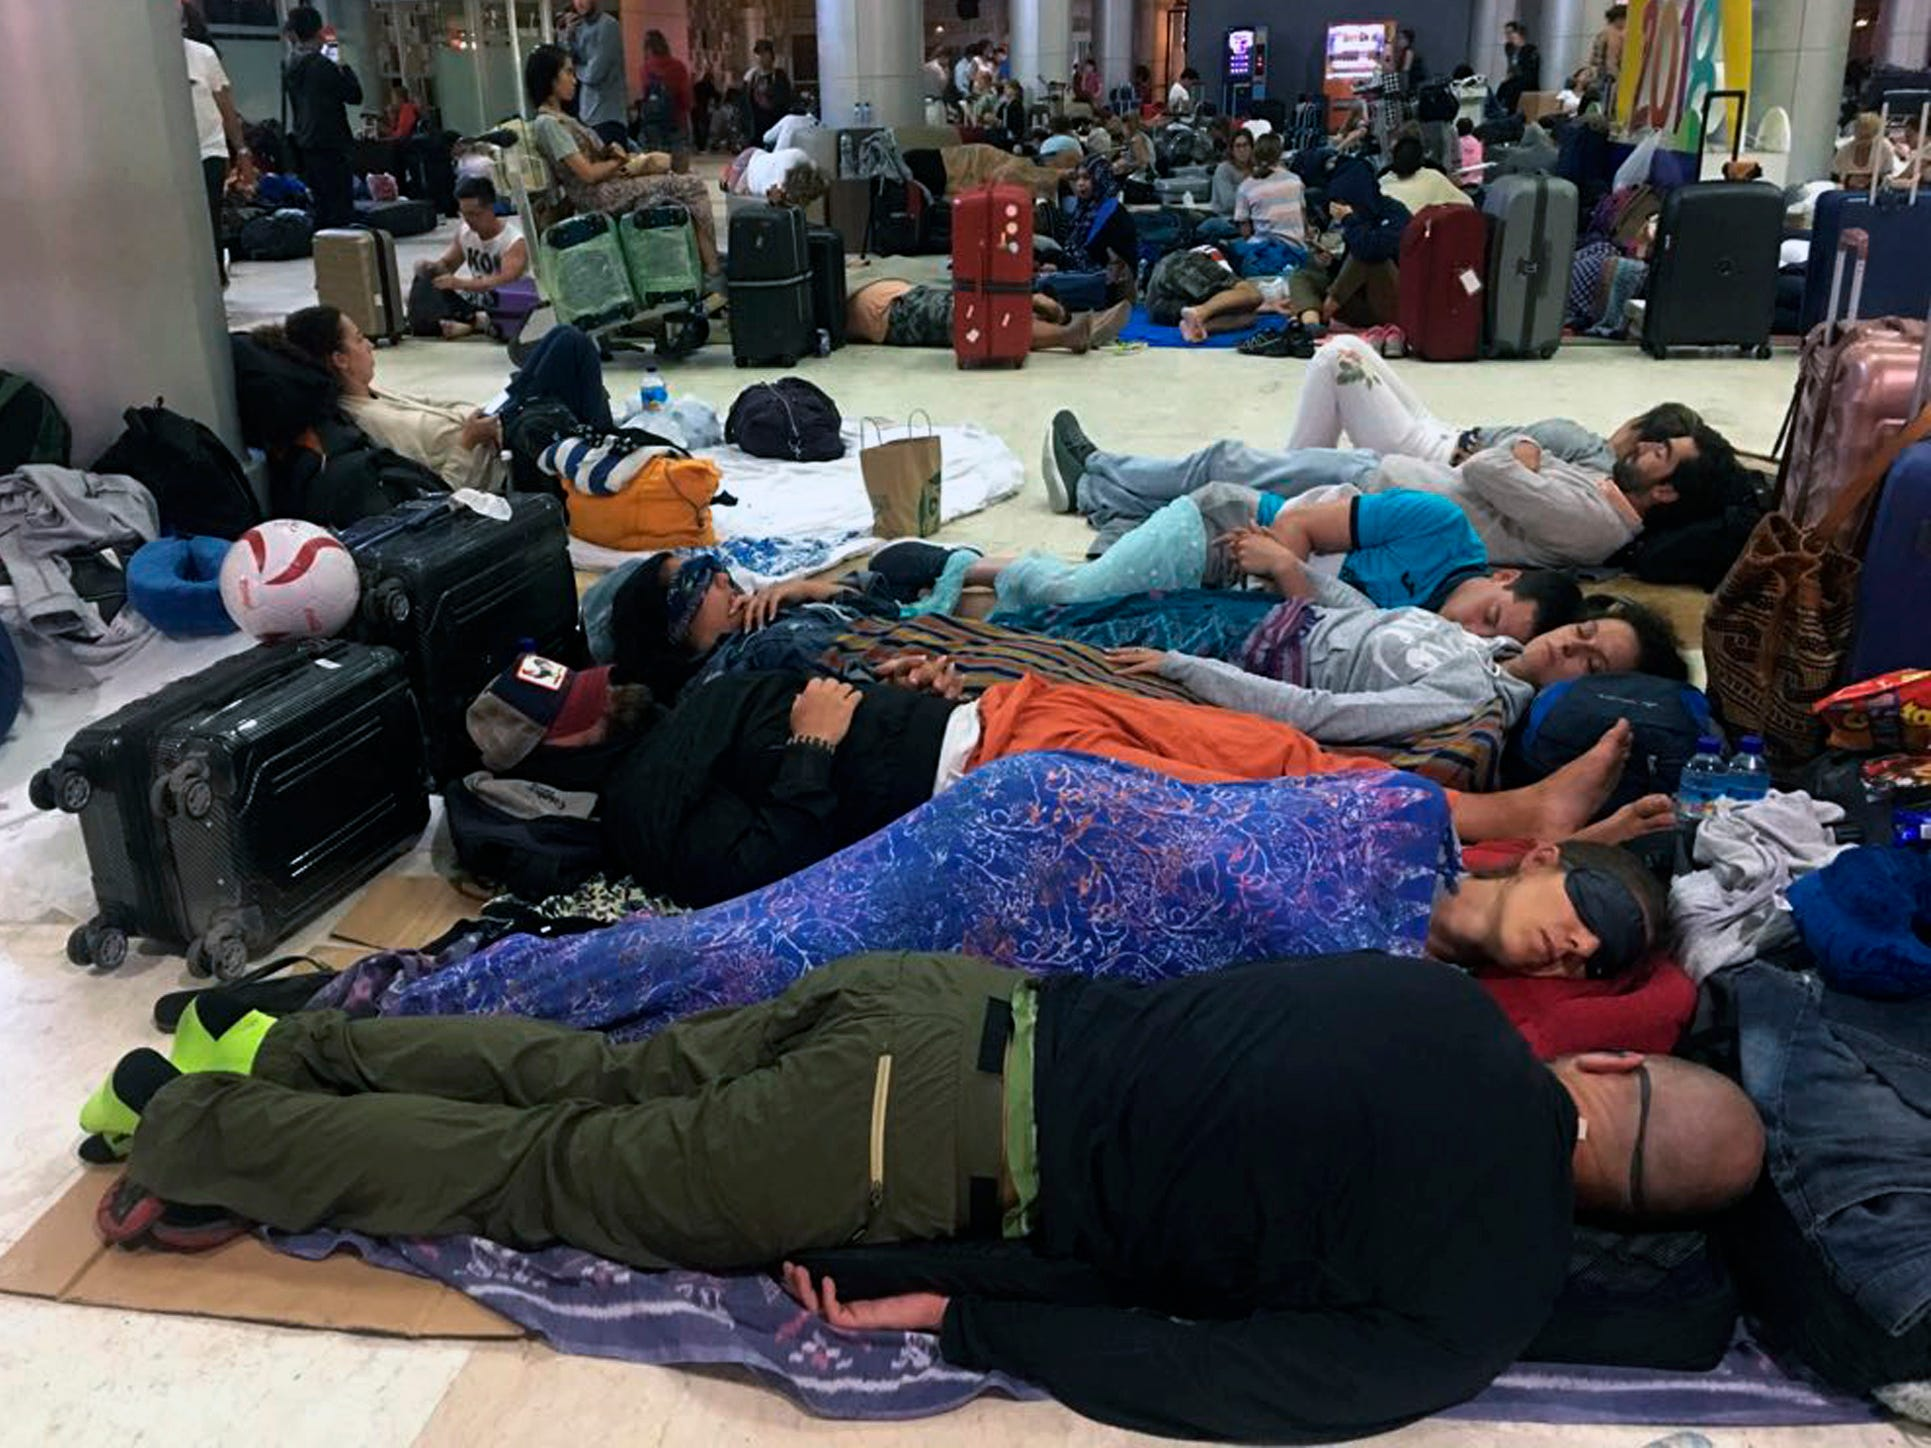 People sleep on the floor while stranded at Lombok International Airport following an earthquake in Praya, Lombok Island, Indonesia, Aug. 6, 2018.